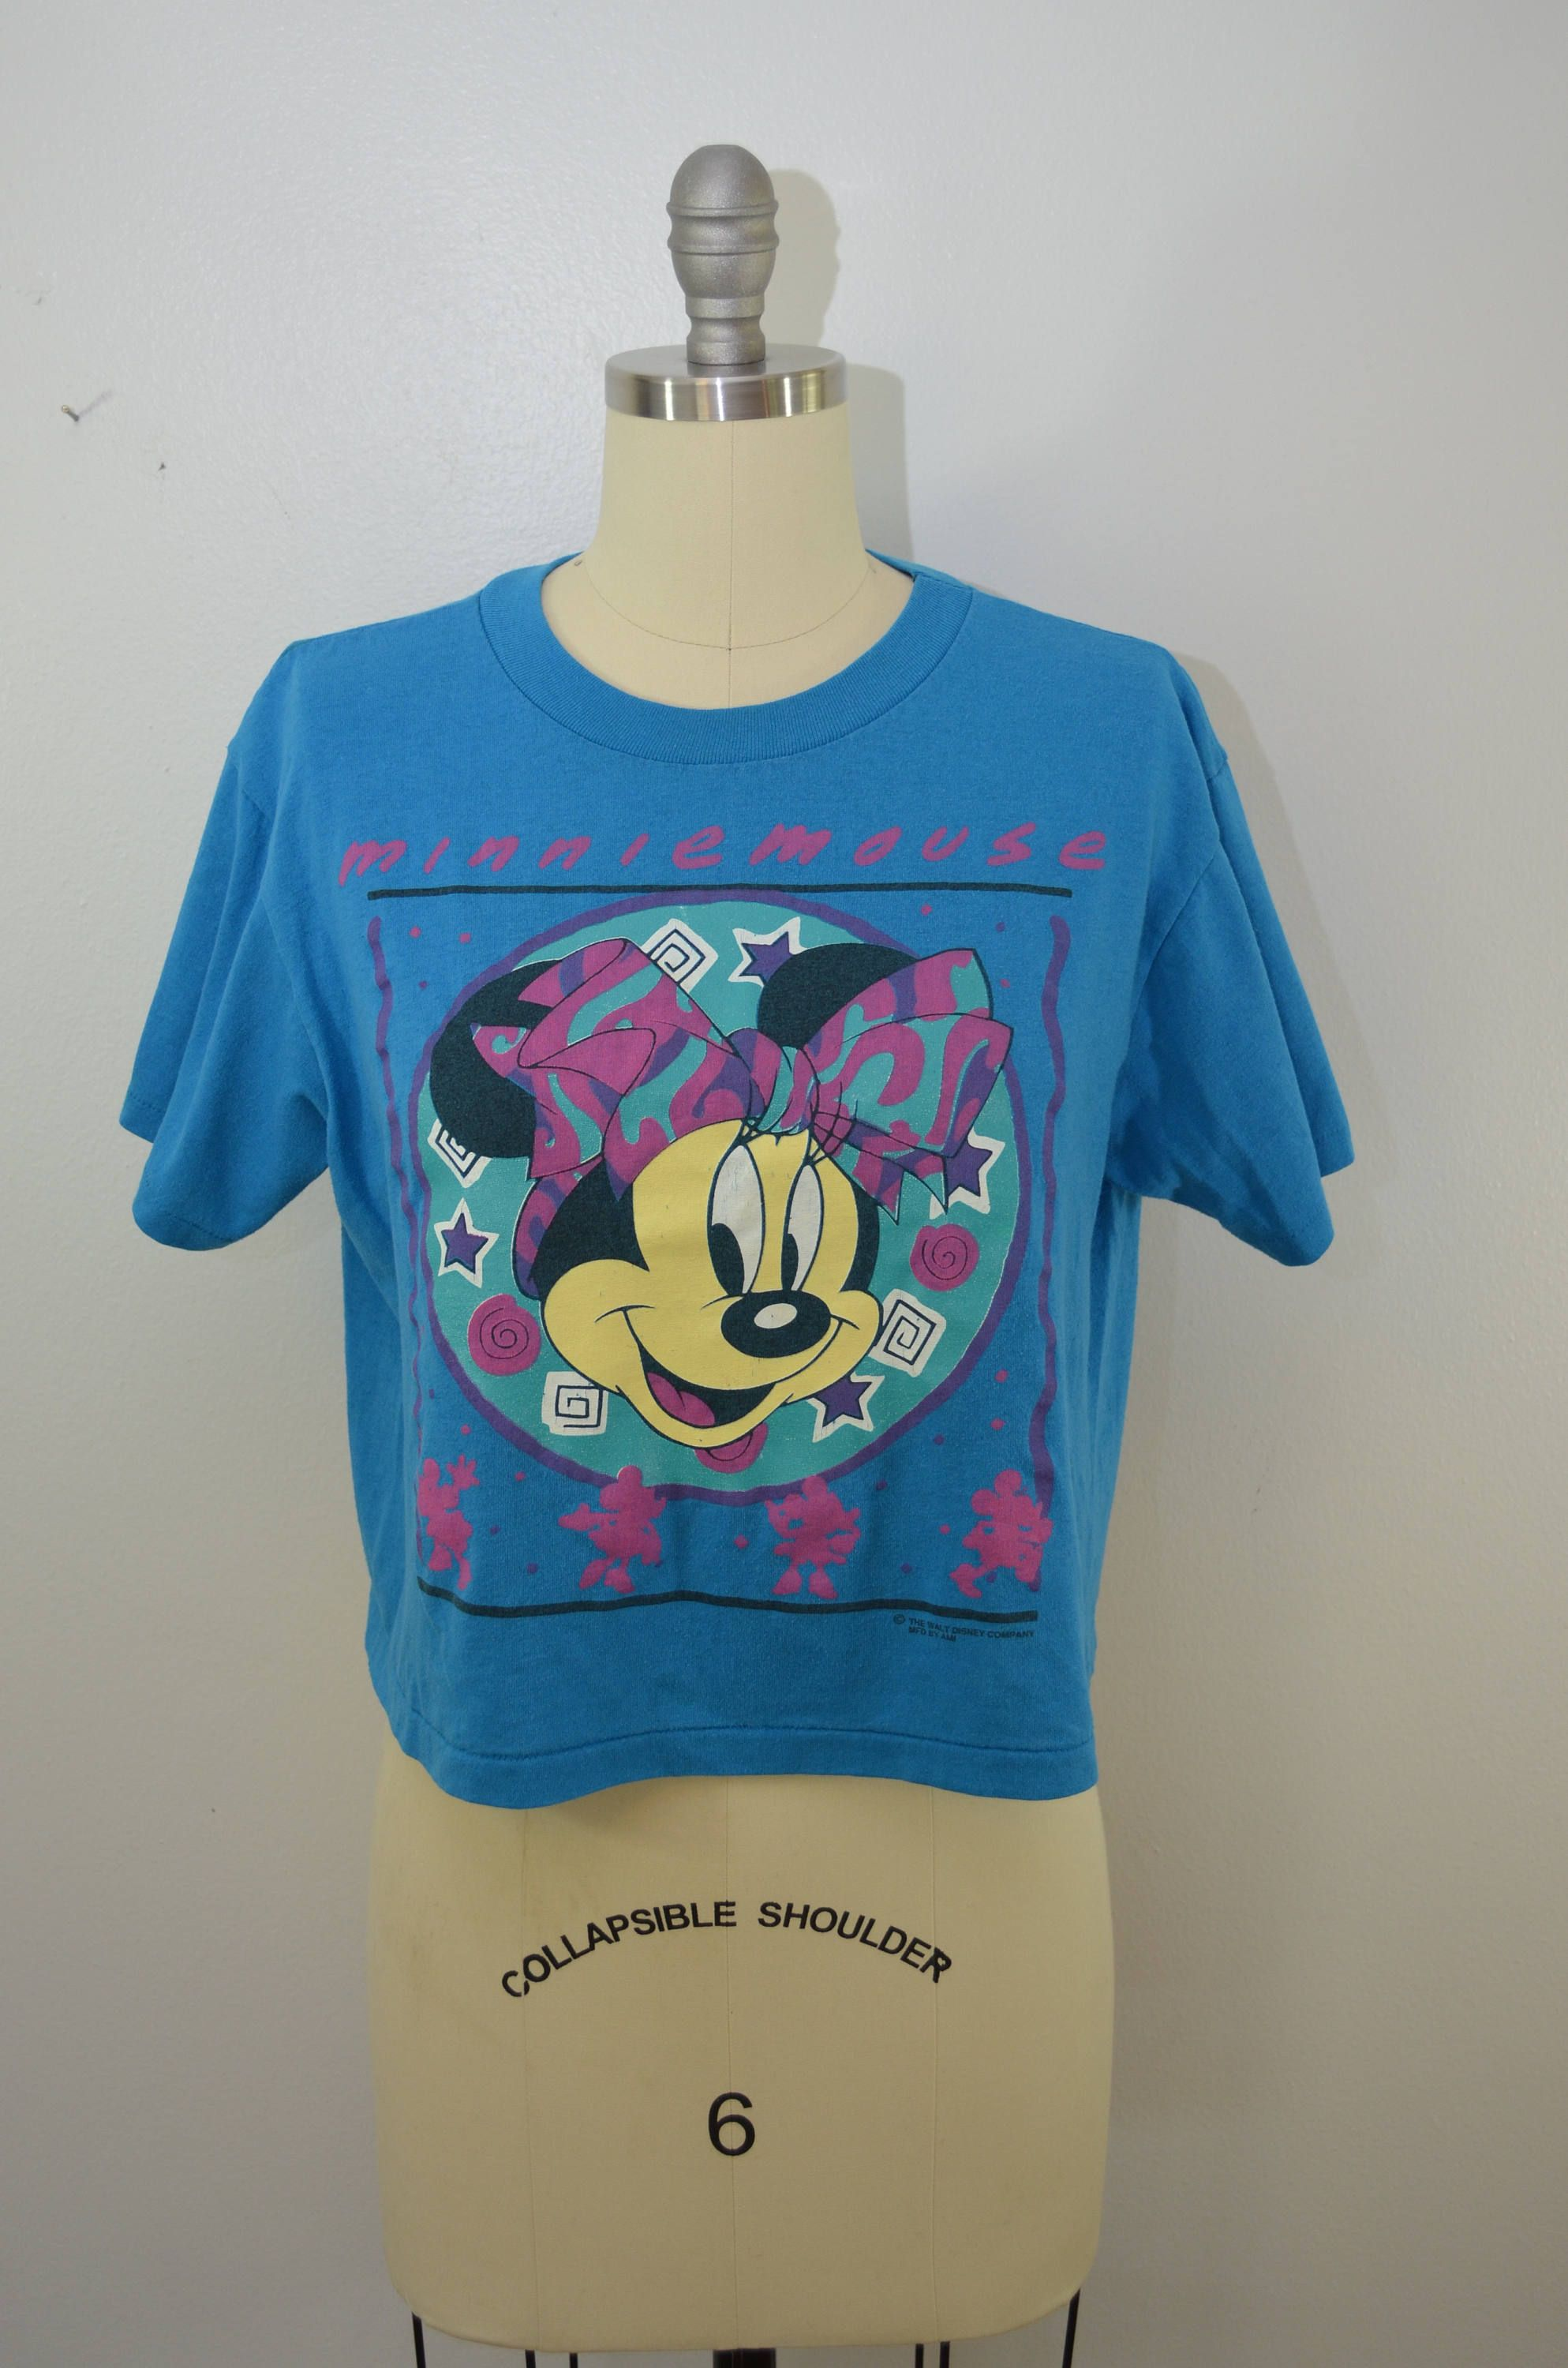 601017ca36123 Vintage MINNIE MOUSE crop top t-shirt 1980 s made in usa Medium Walt Disney  Company by ilovevintagestuff on Etsy